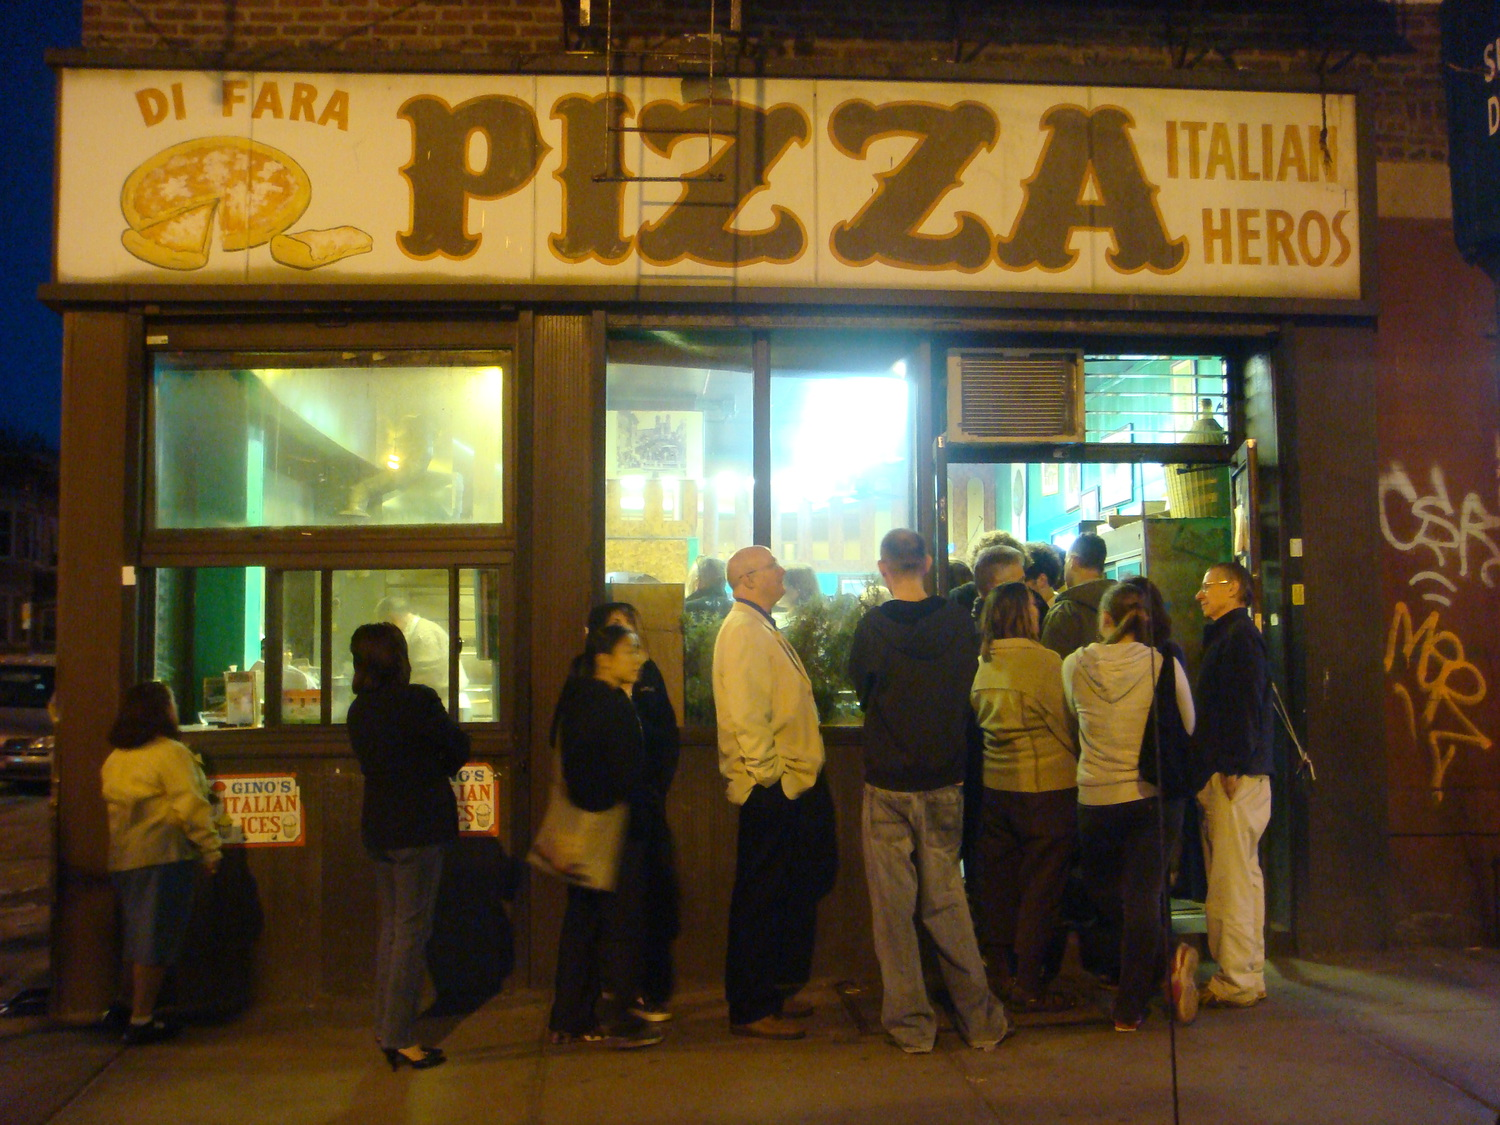 Di Fara Pizzeria | Midwood, Brooklyn